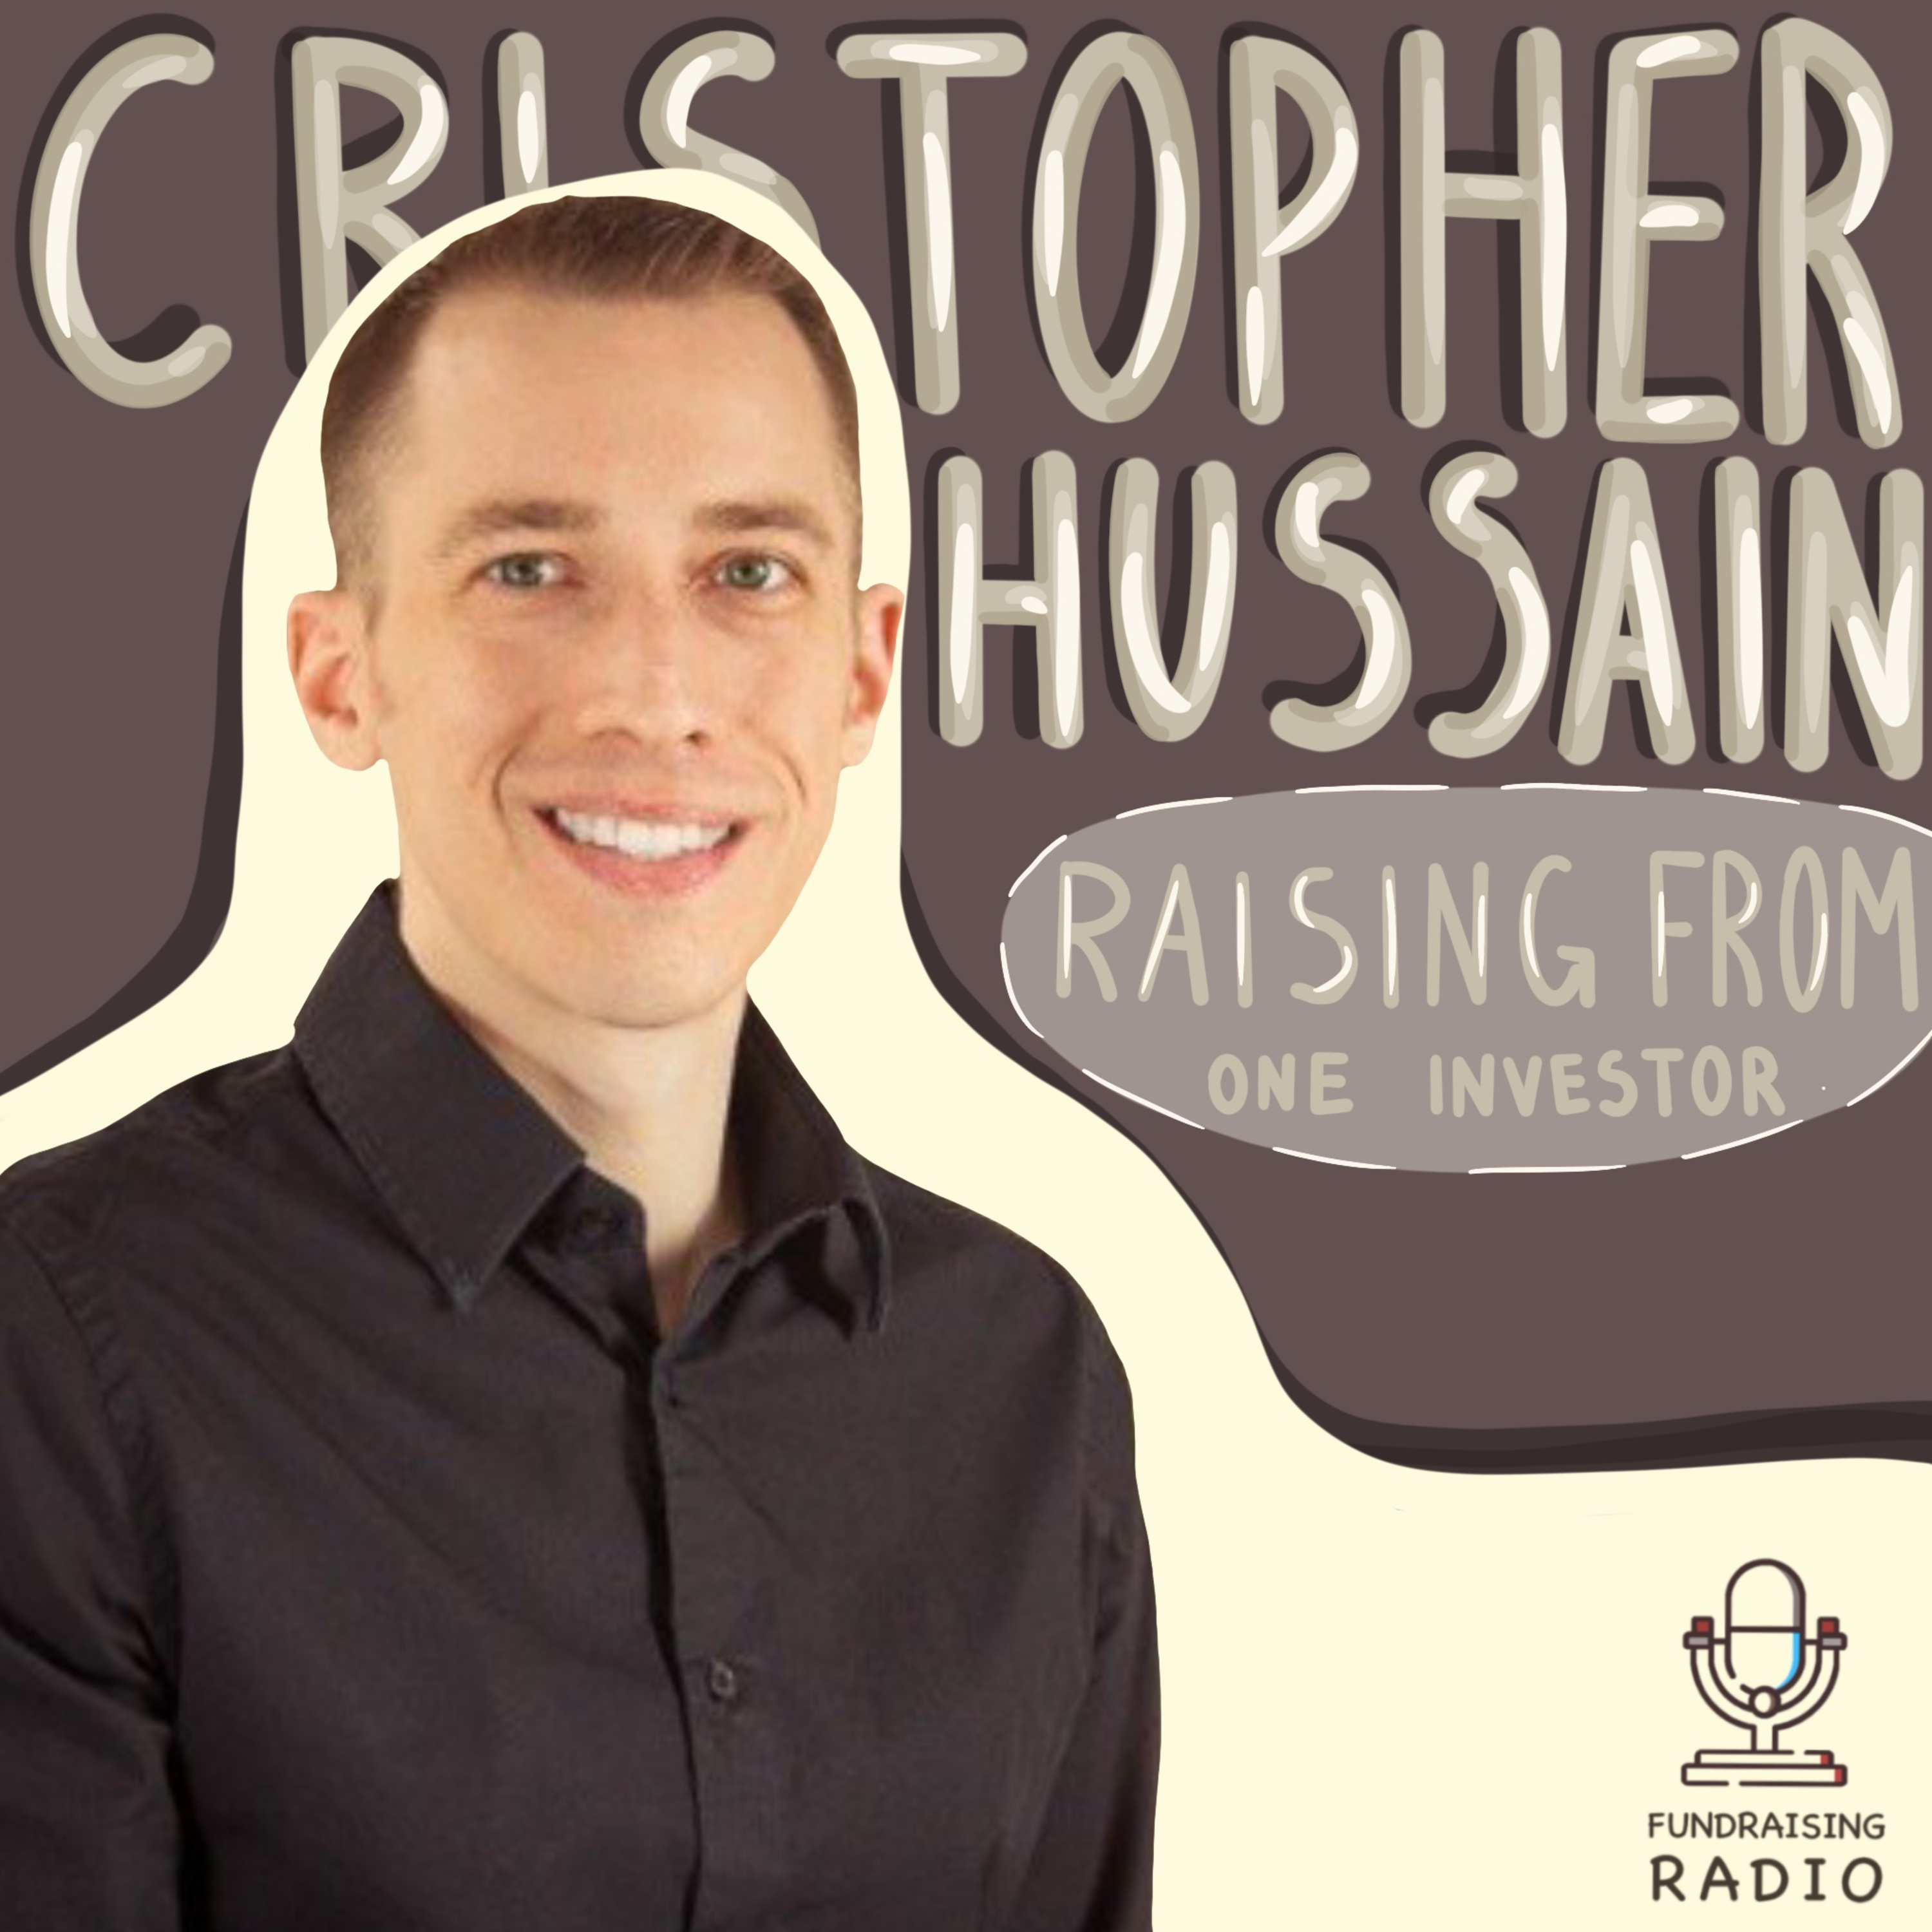 Fundraising after two exits - Christopher Hussain about his lessons learned from previous fundraising experiences.